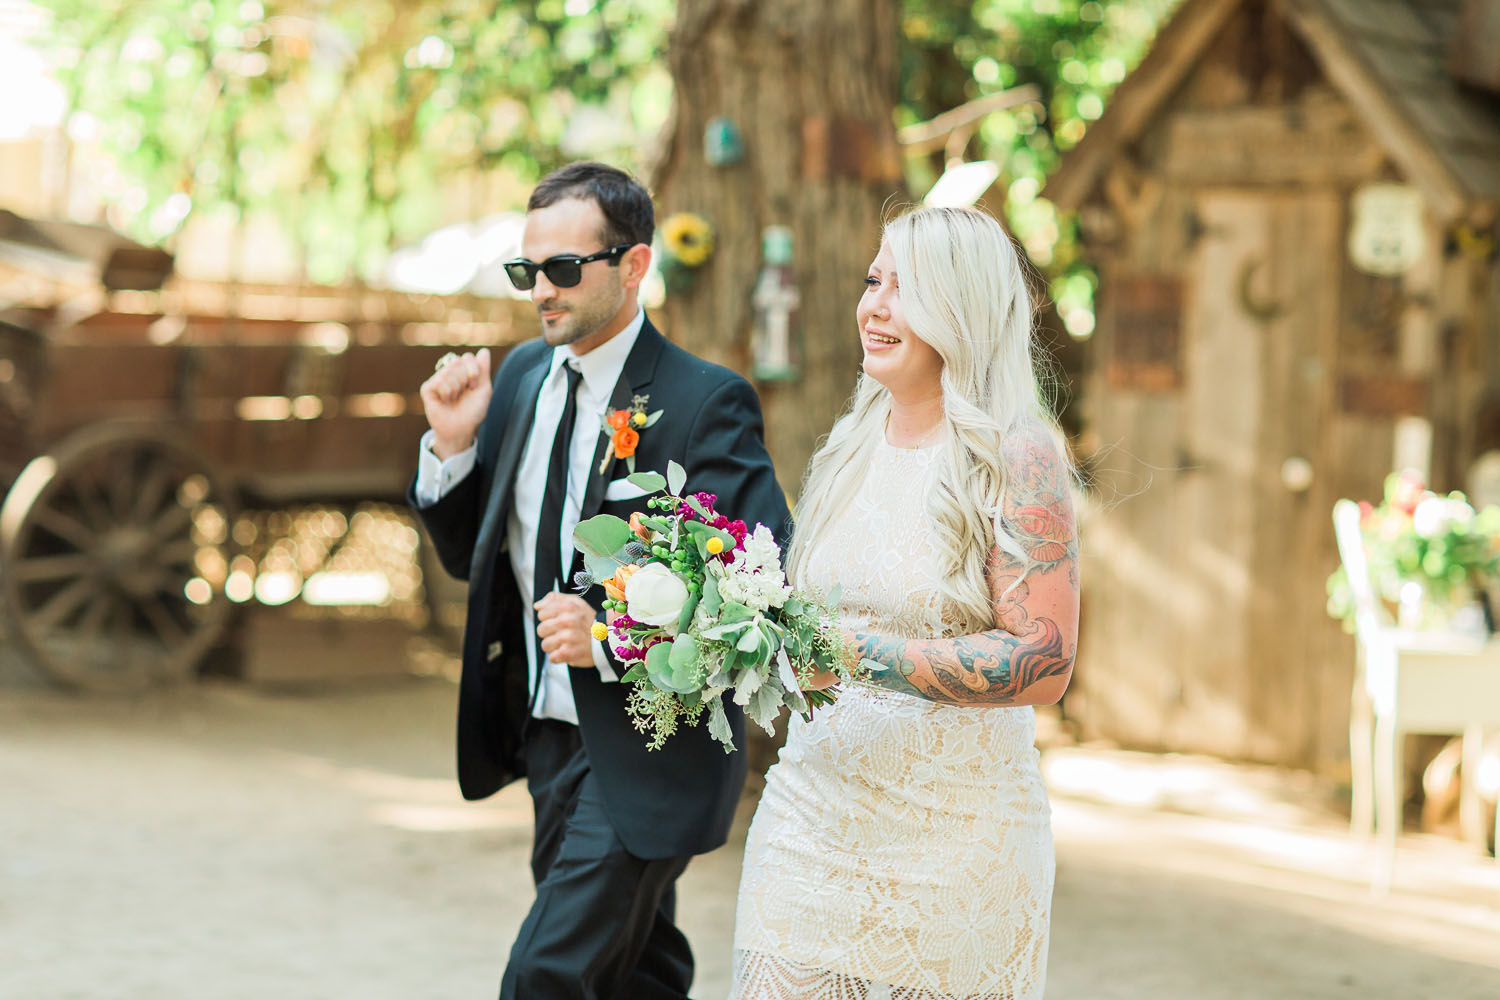 The Photege - Elegant Boho Wedding on Suburu Farm in Bakersfield California- Cassie and Darin Buoni-3043